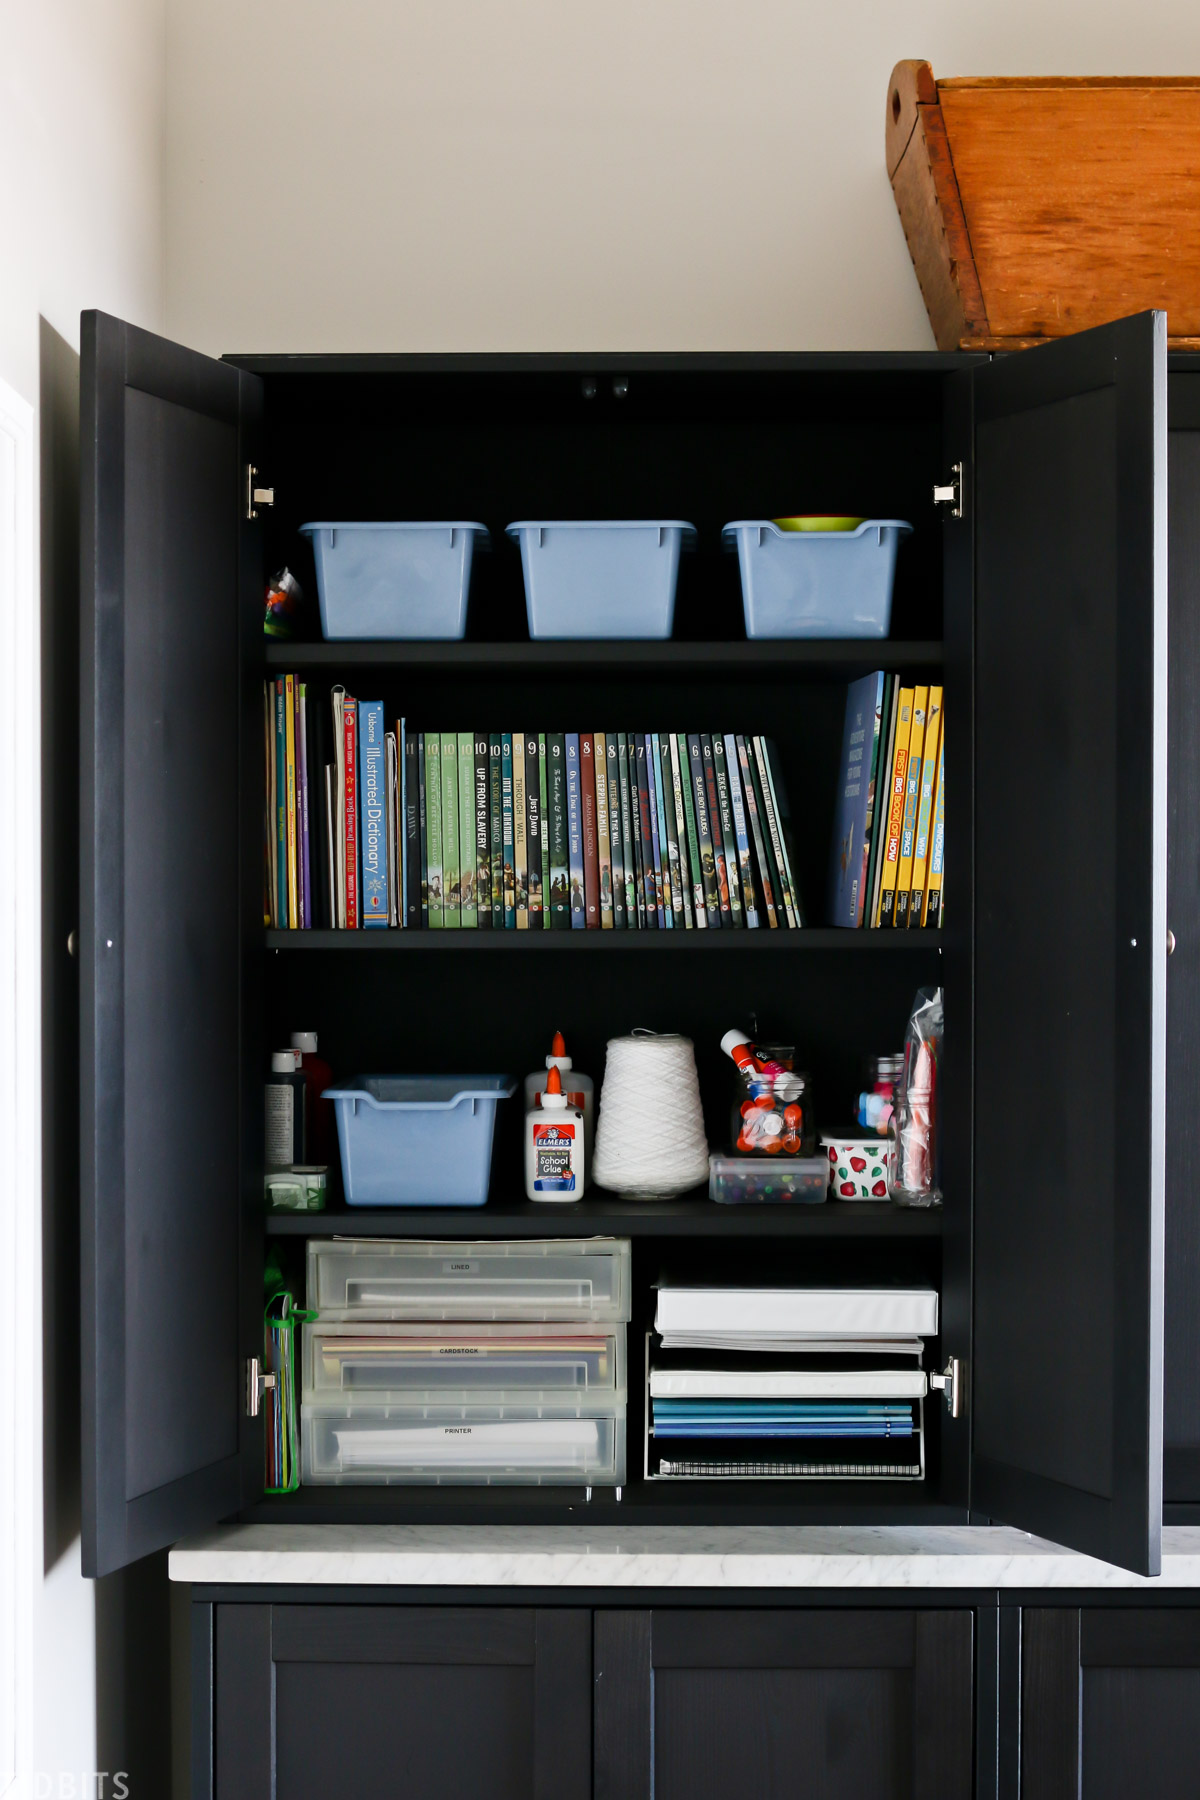 cupboard for homeschooling supplies like paper, binders, blue, and books